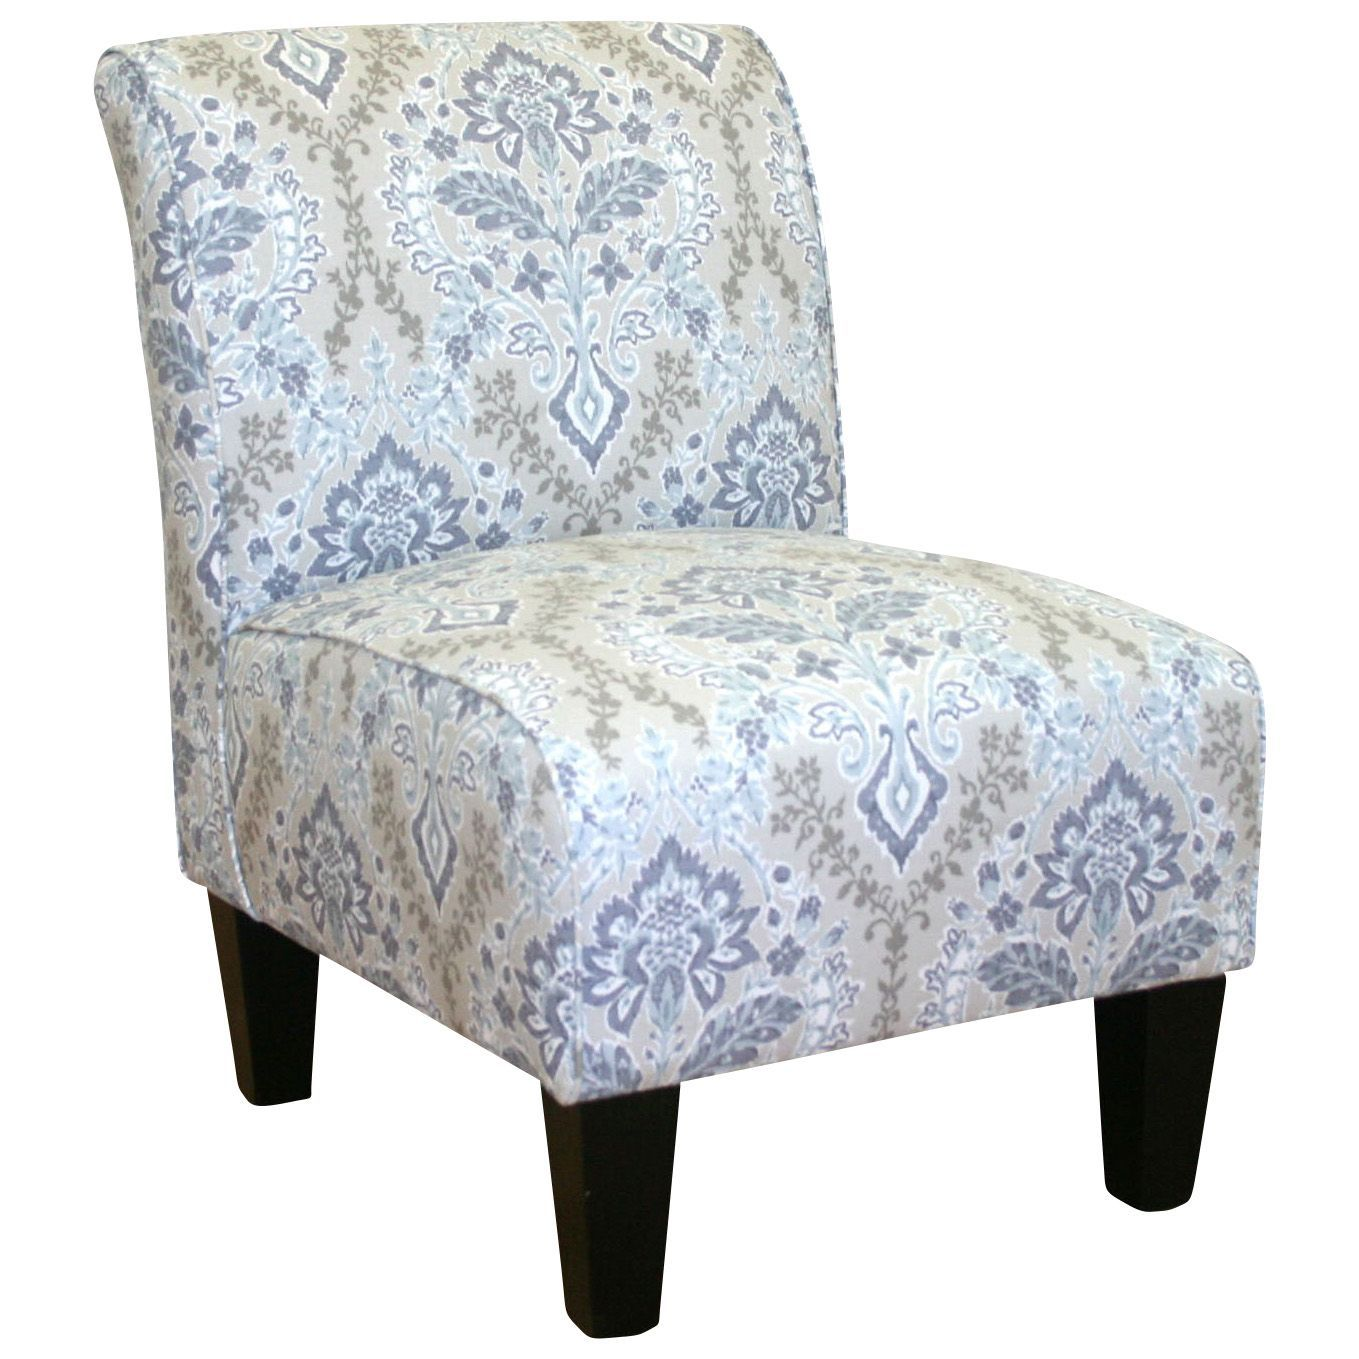 Fingerhut McLeland Design Delany Accent Chair in 2019